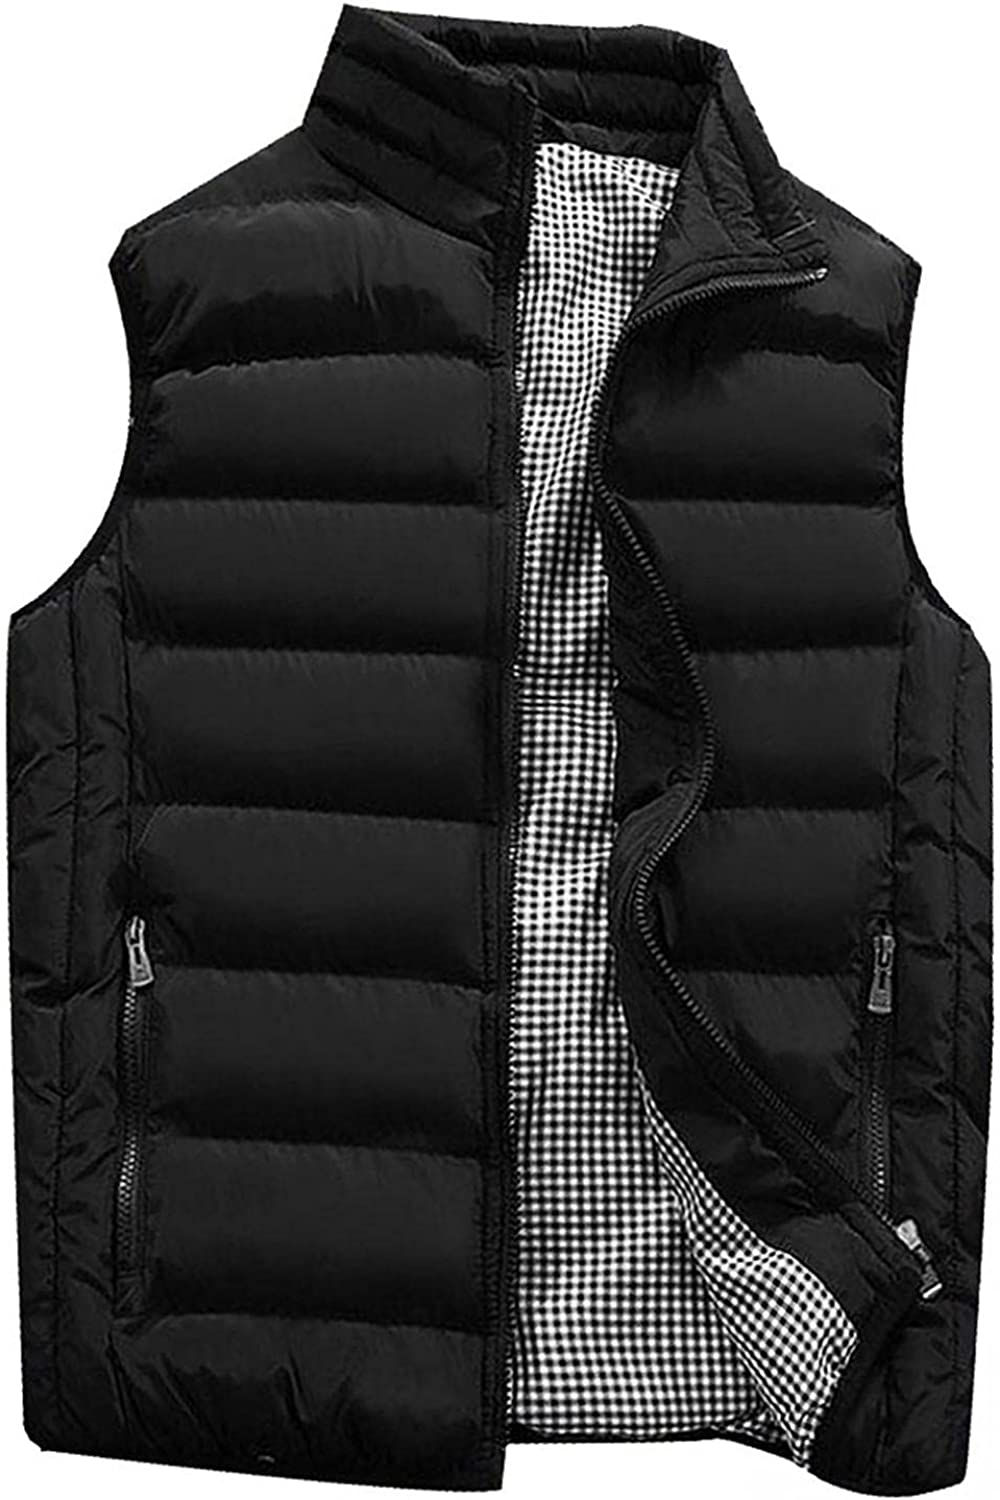 Beppter Men's Outdoor Vest Padded Coat Winter Warm Puffer Sleeveless Jacket Thick Vest Lightweight Outwear with Pocket